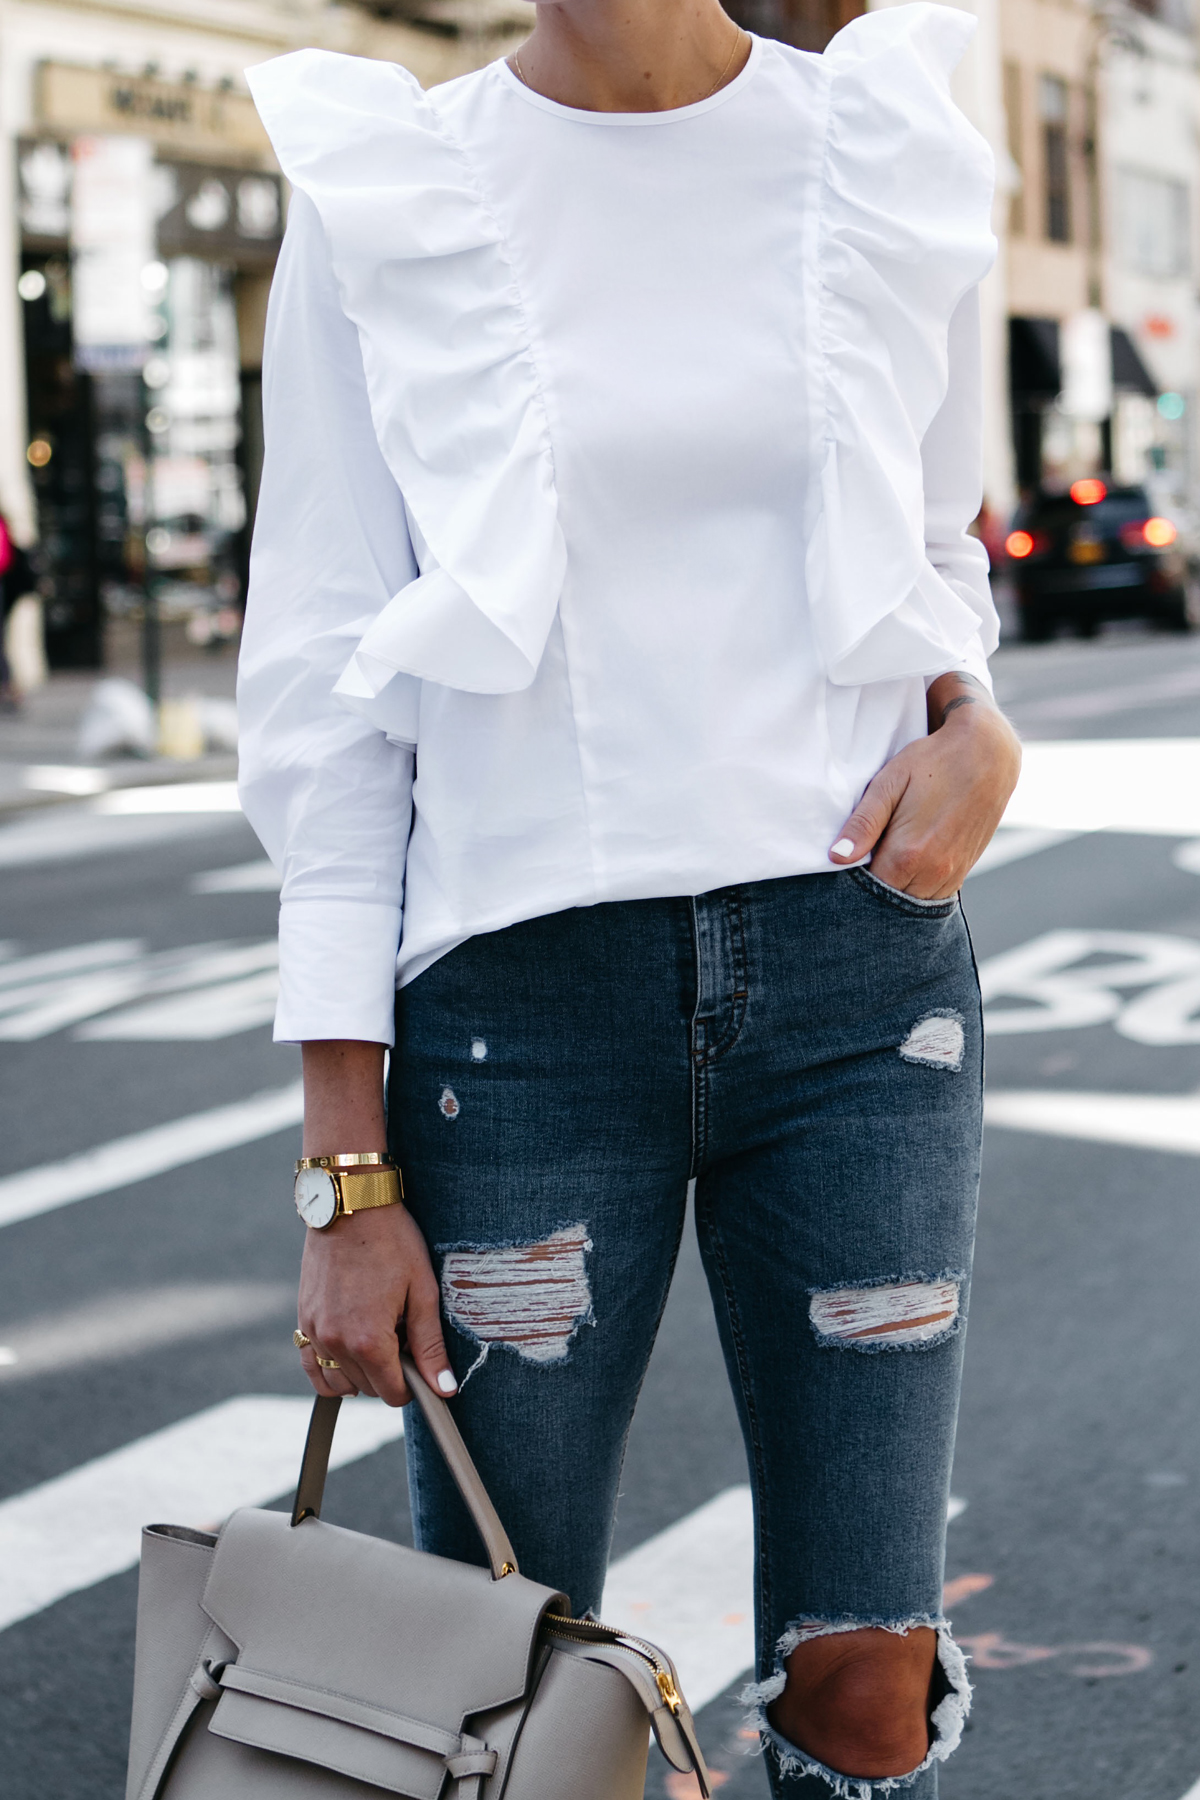 Zara White Ruffle Shirt Denim Ripped Skinny Jeans Fashion Jackson Dallas Blogger Fashion Blogger Street Style NYFW